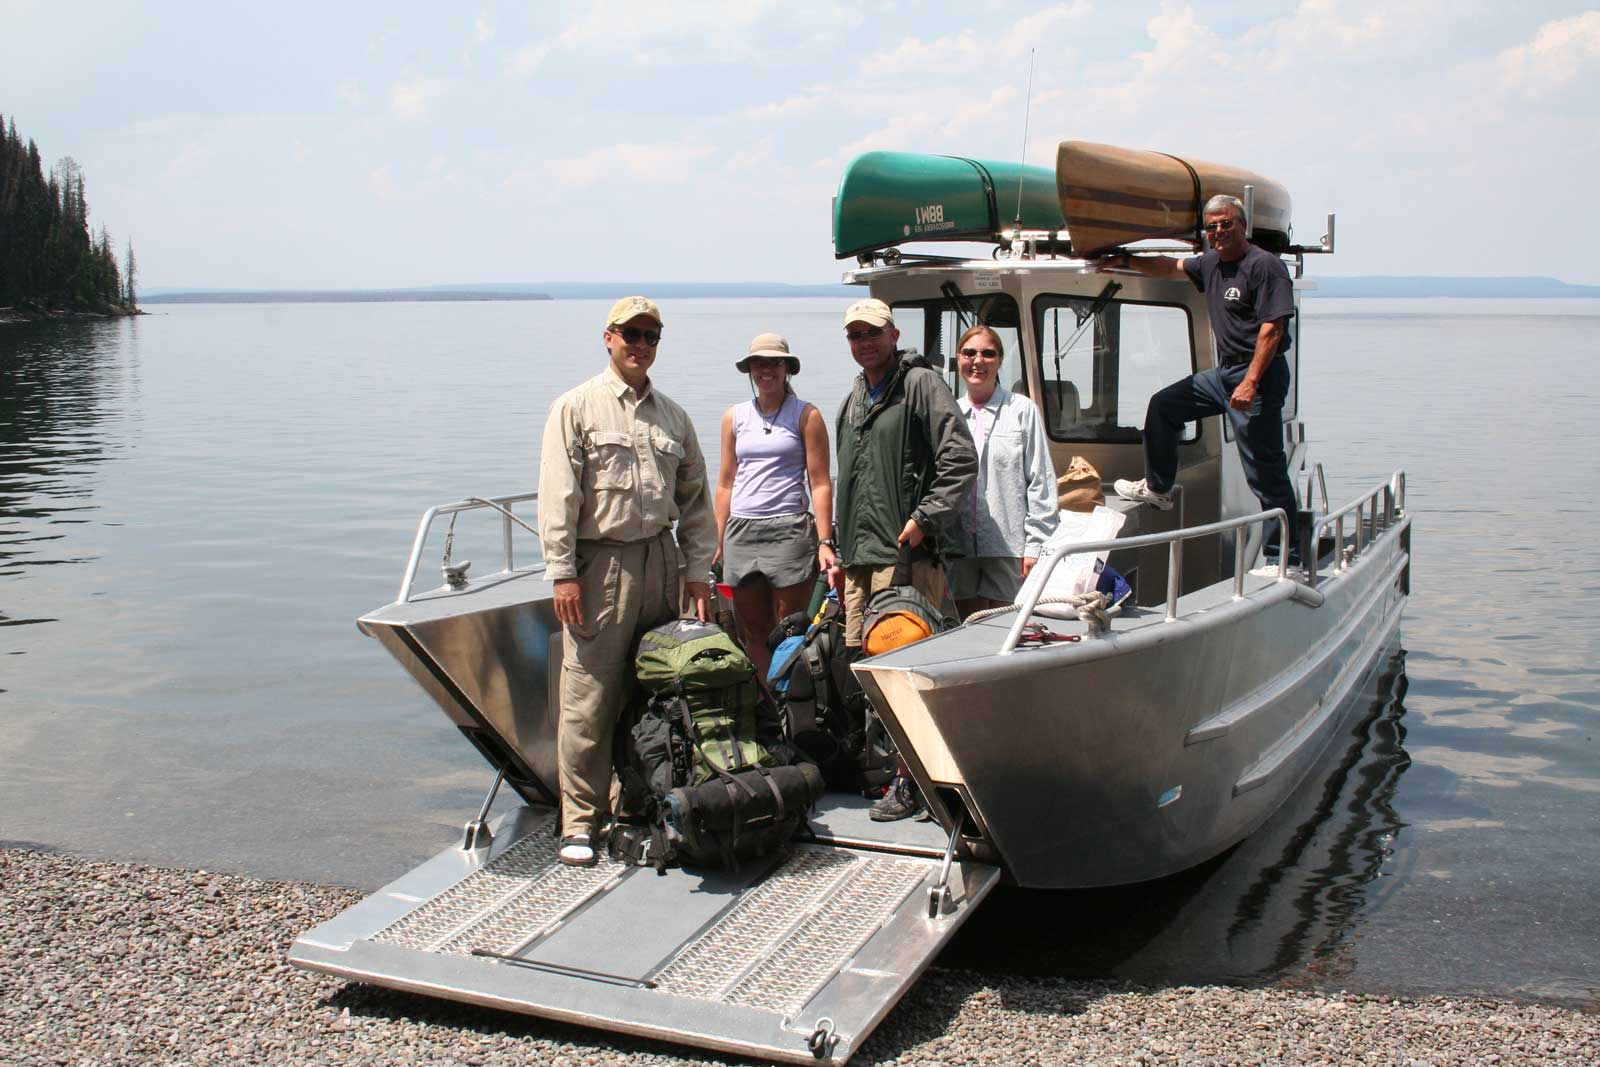 Group of people posing on a boat